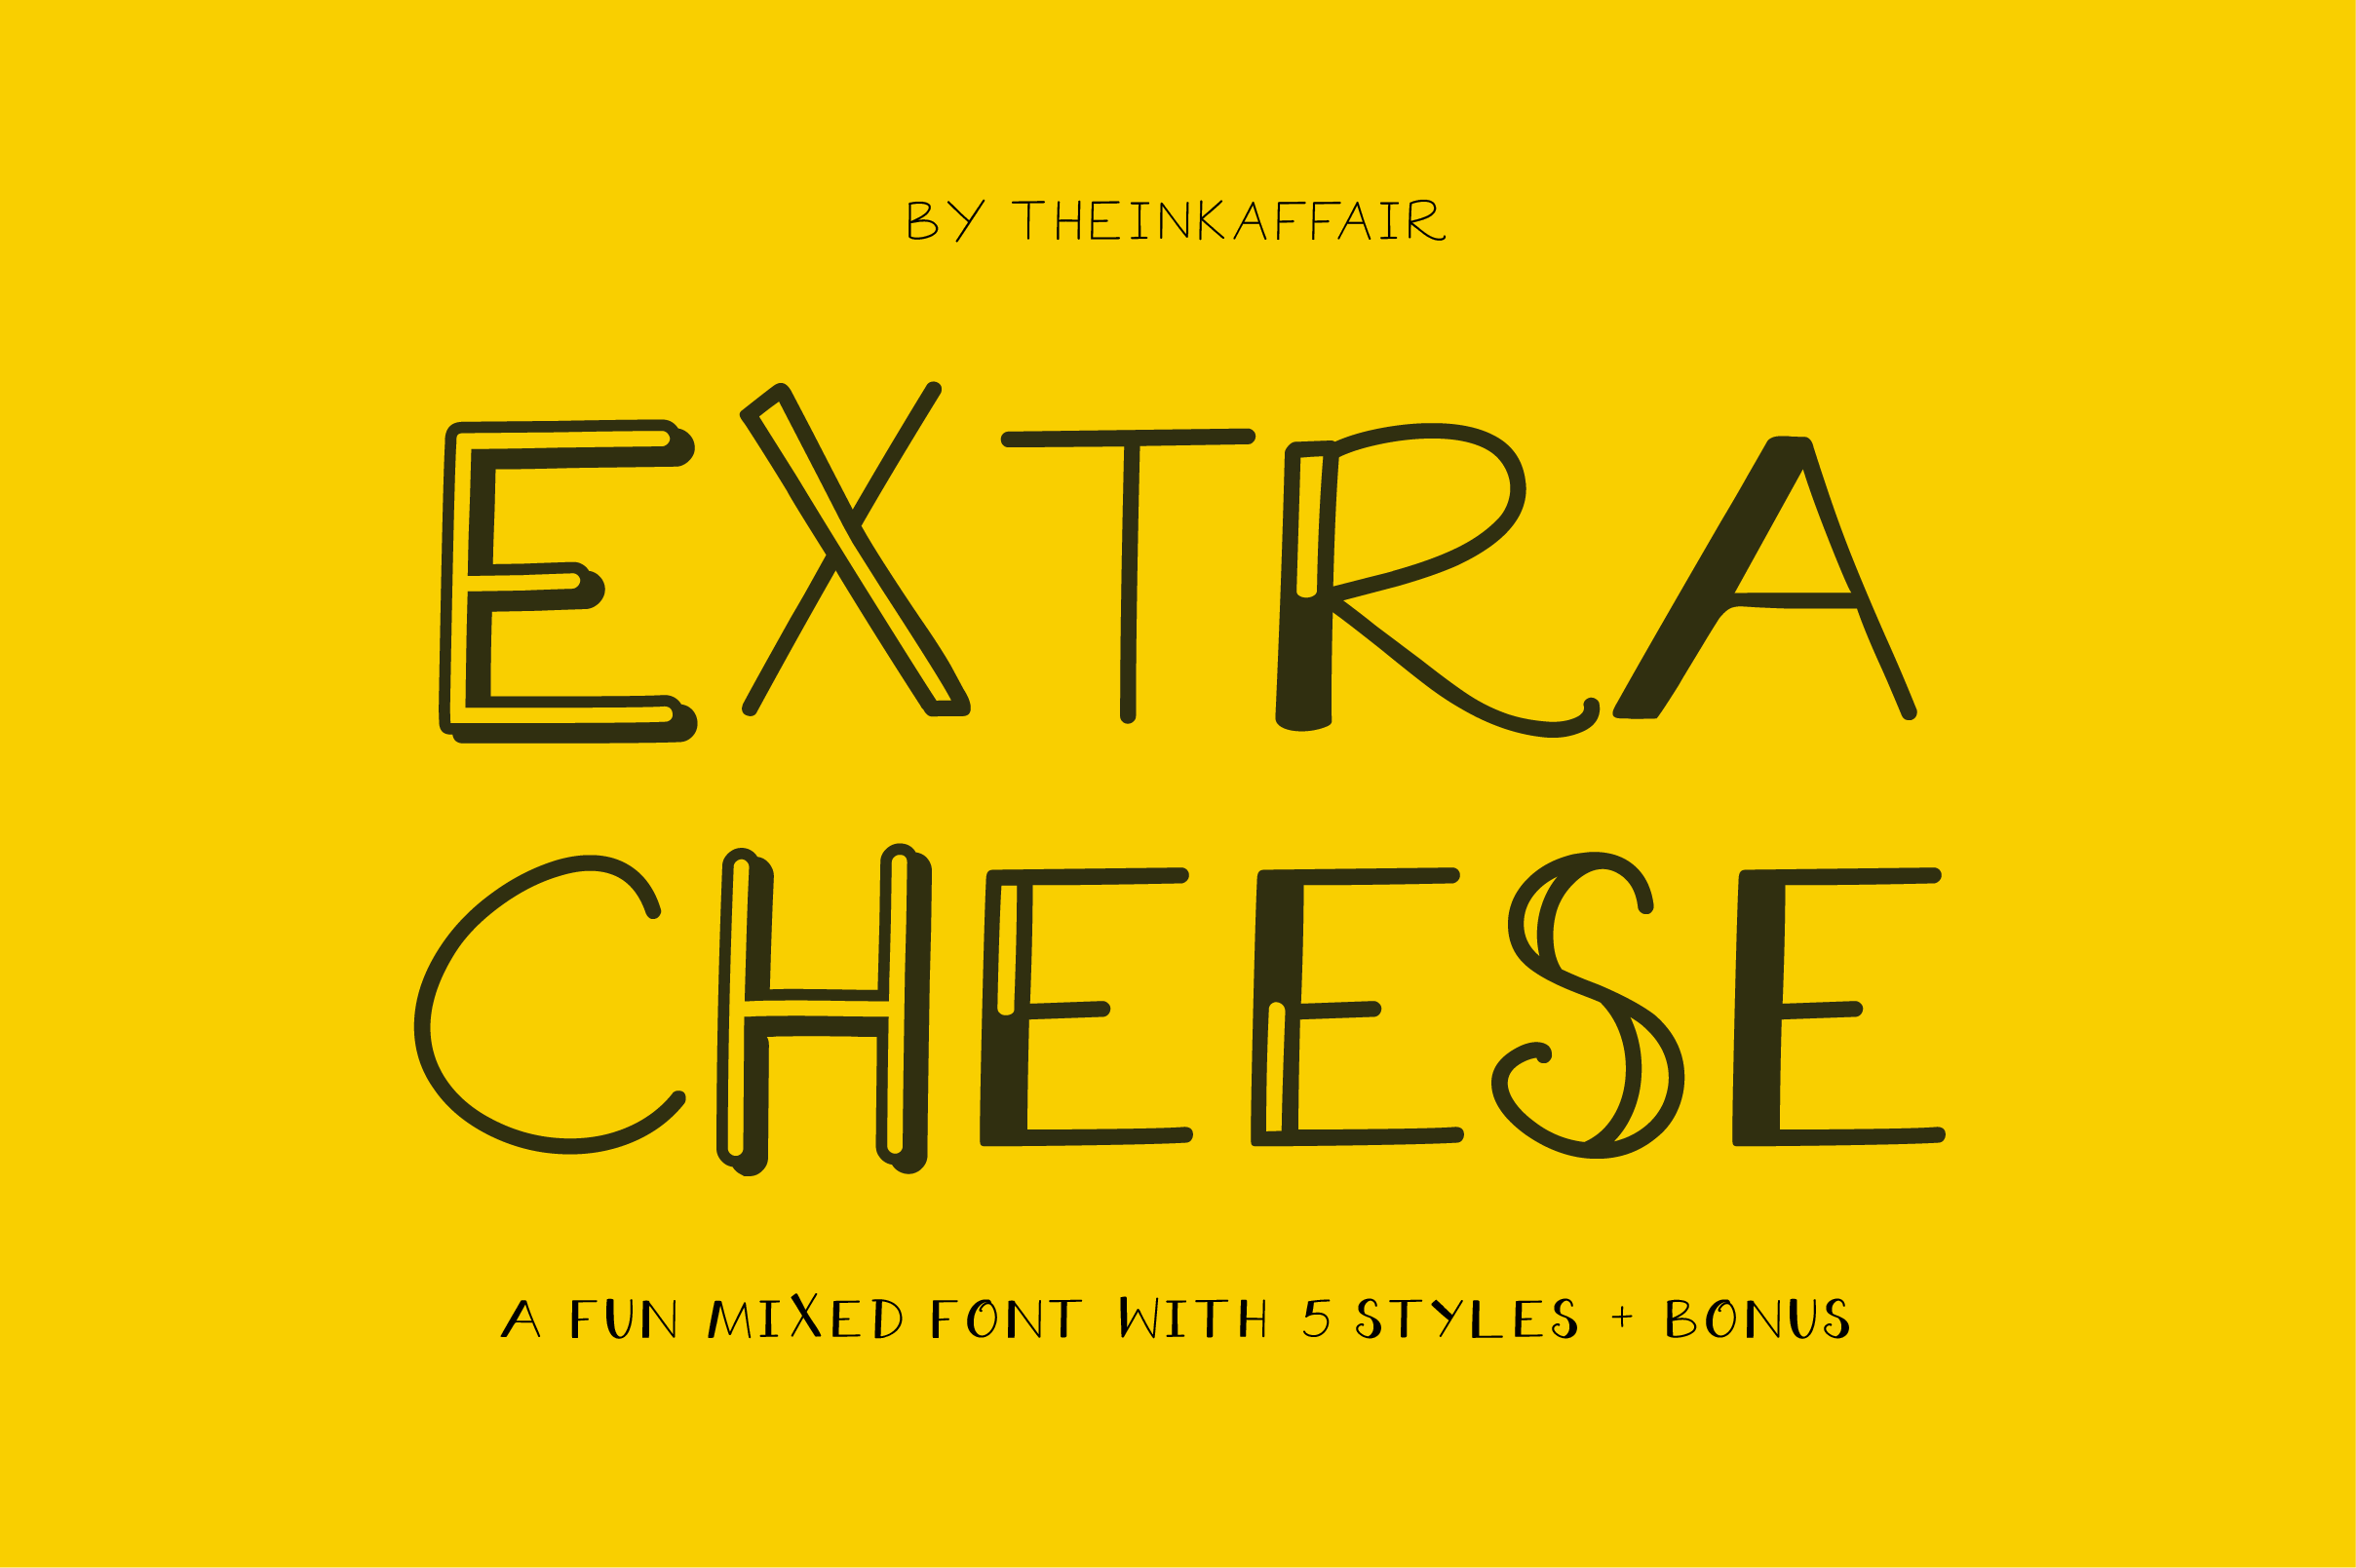 Sale! Extra Cheese Font Set example image 1